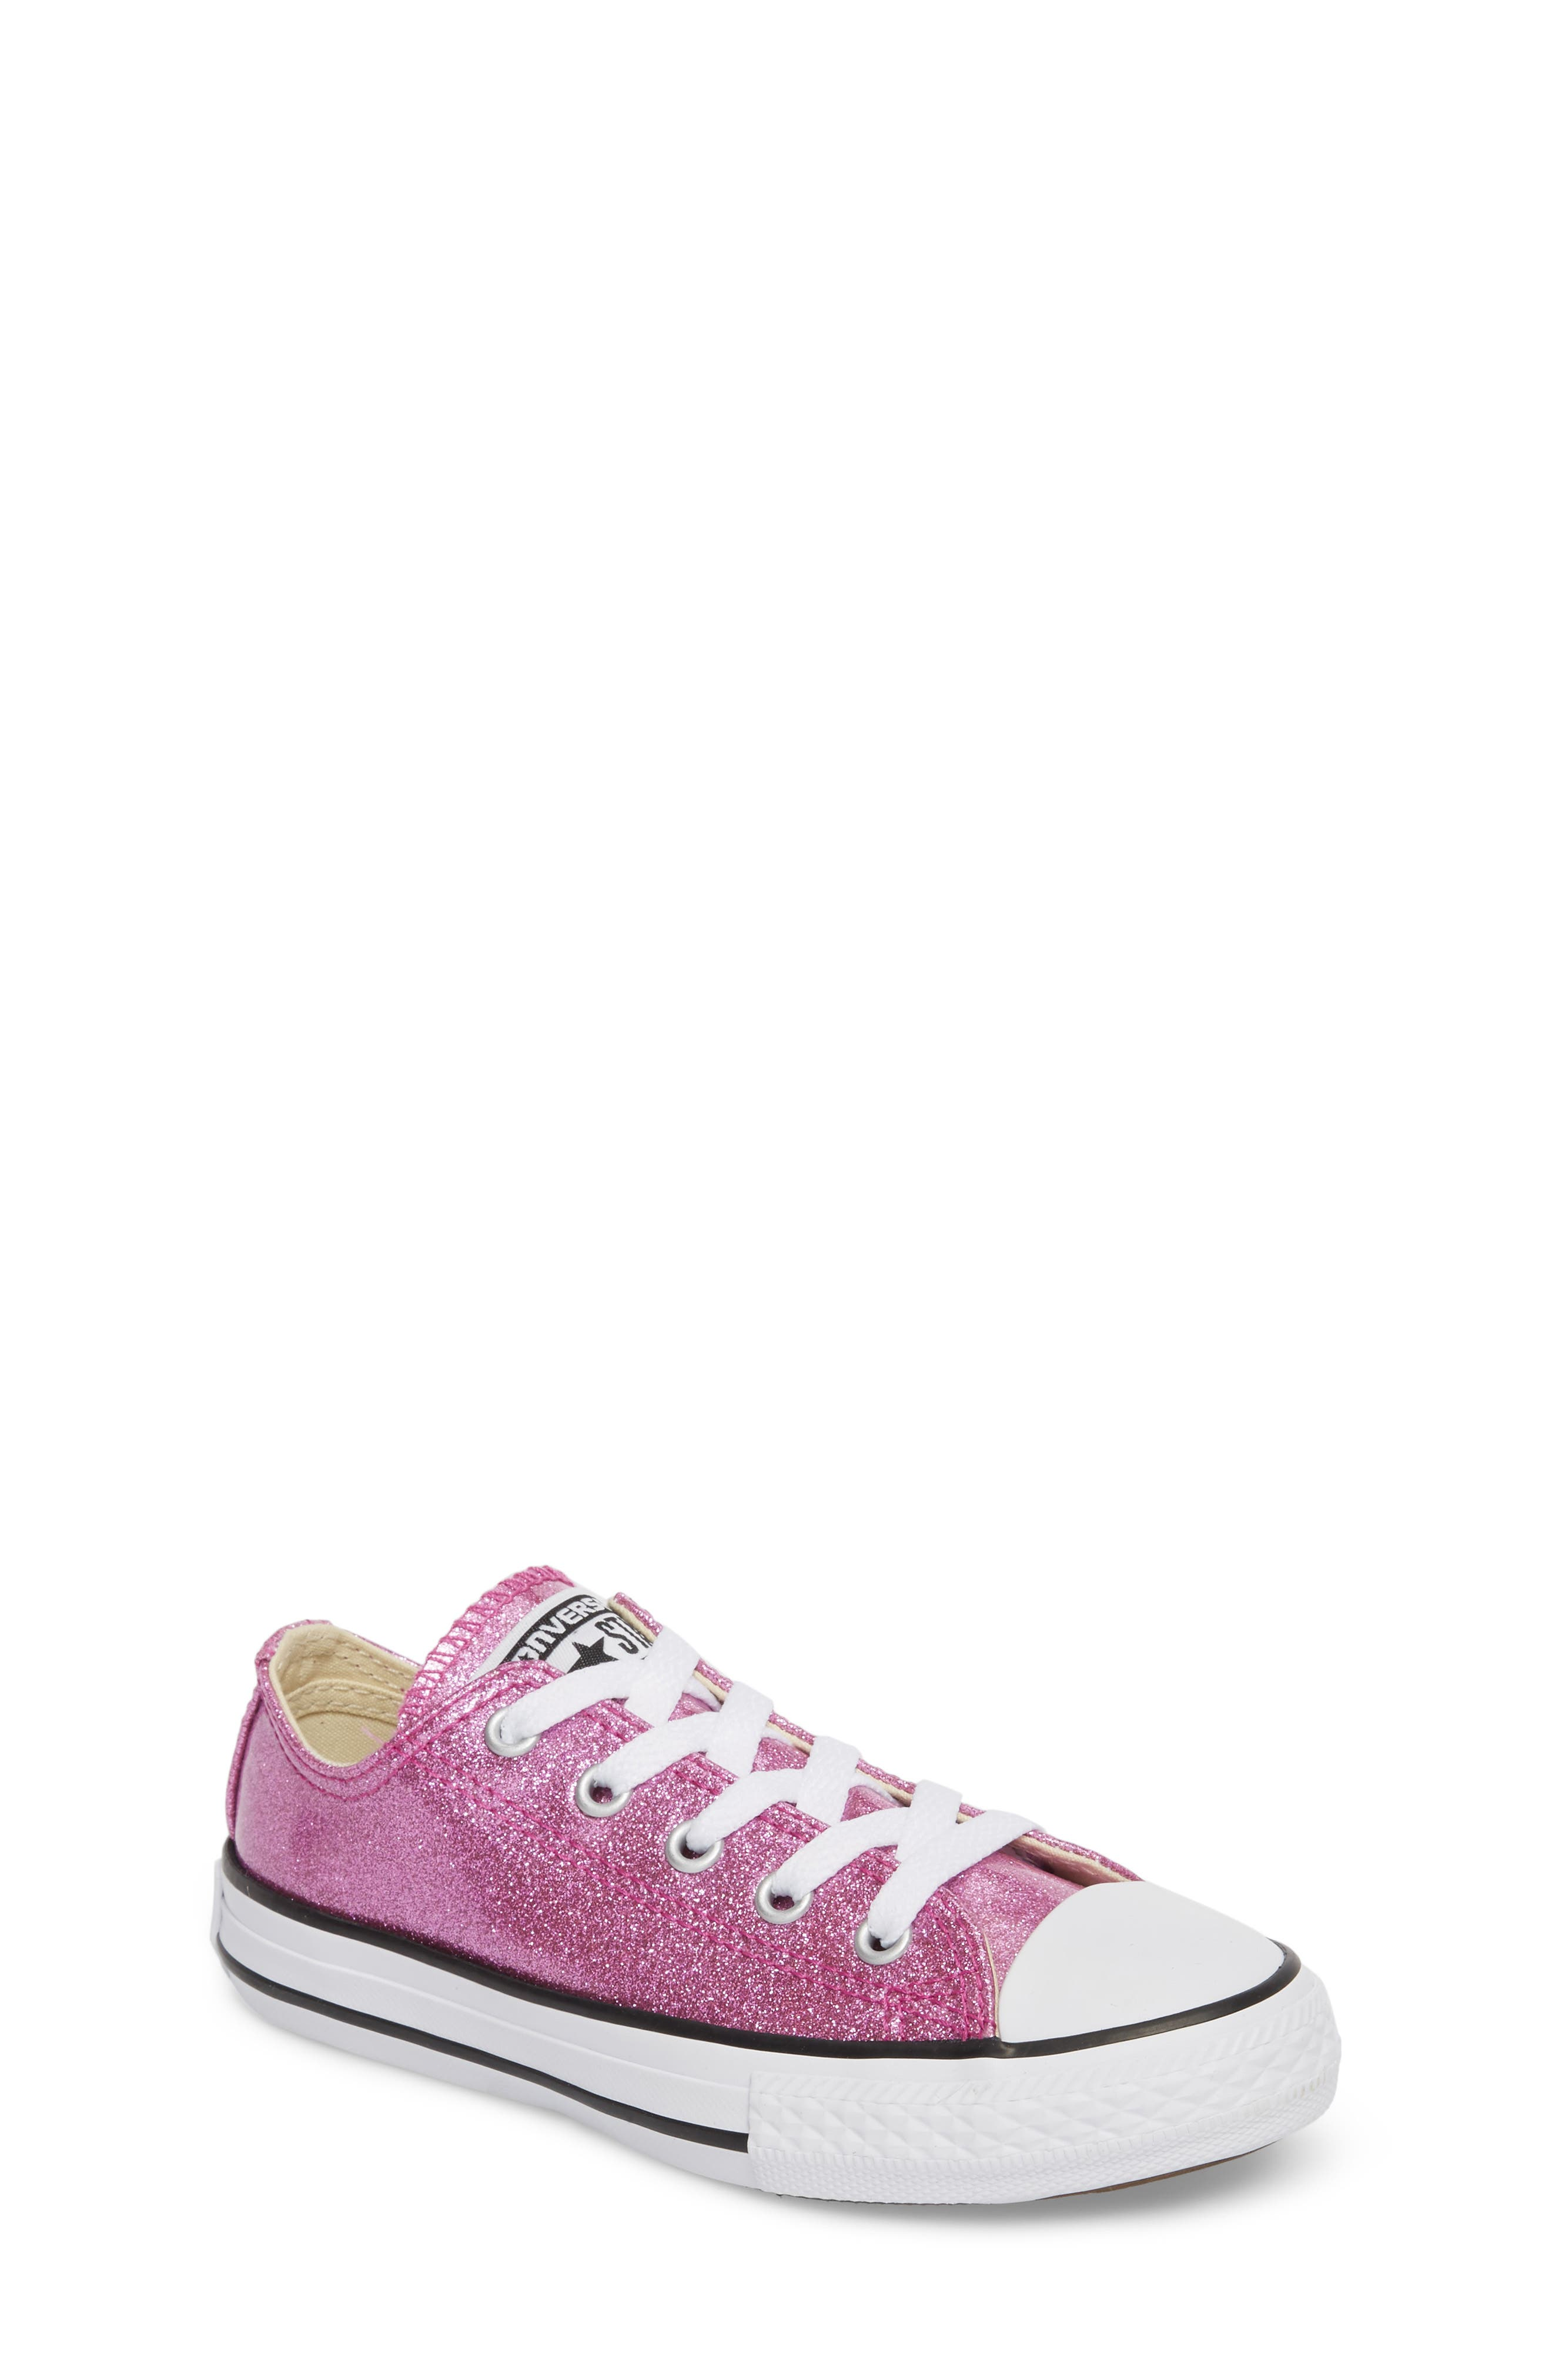 Converse All Star® Seasonal Glitter OX Low Top Sneaker (Toddler, Little Kid & Big Kid)